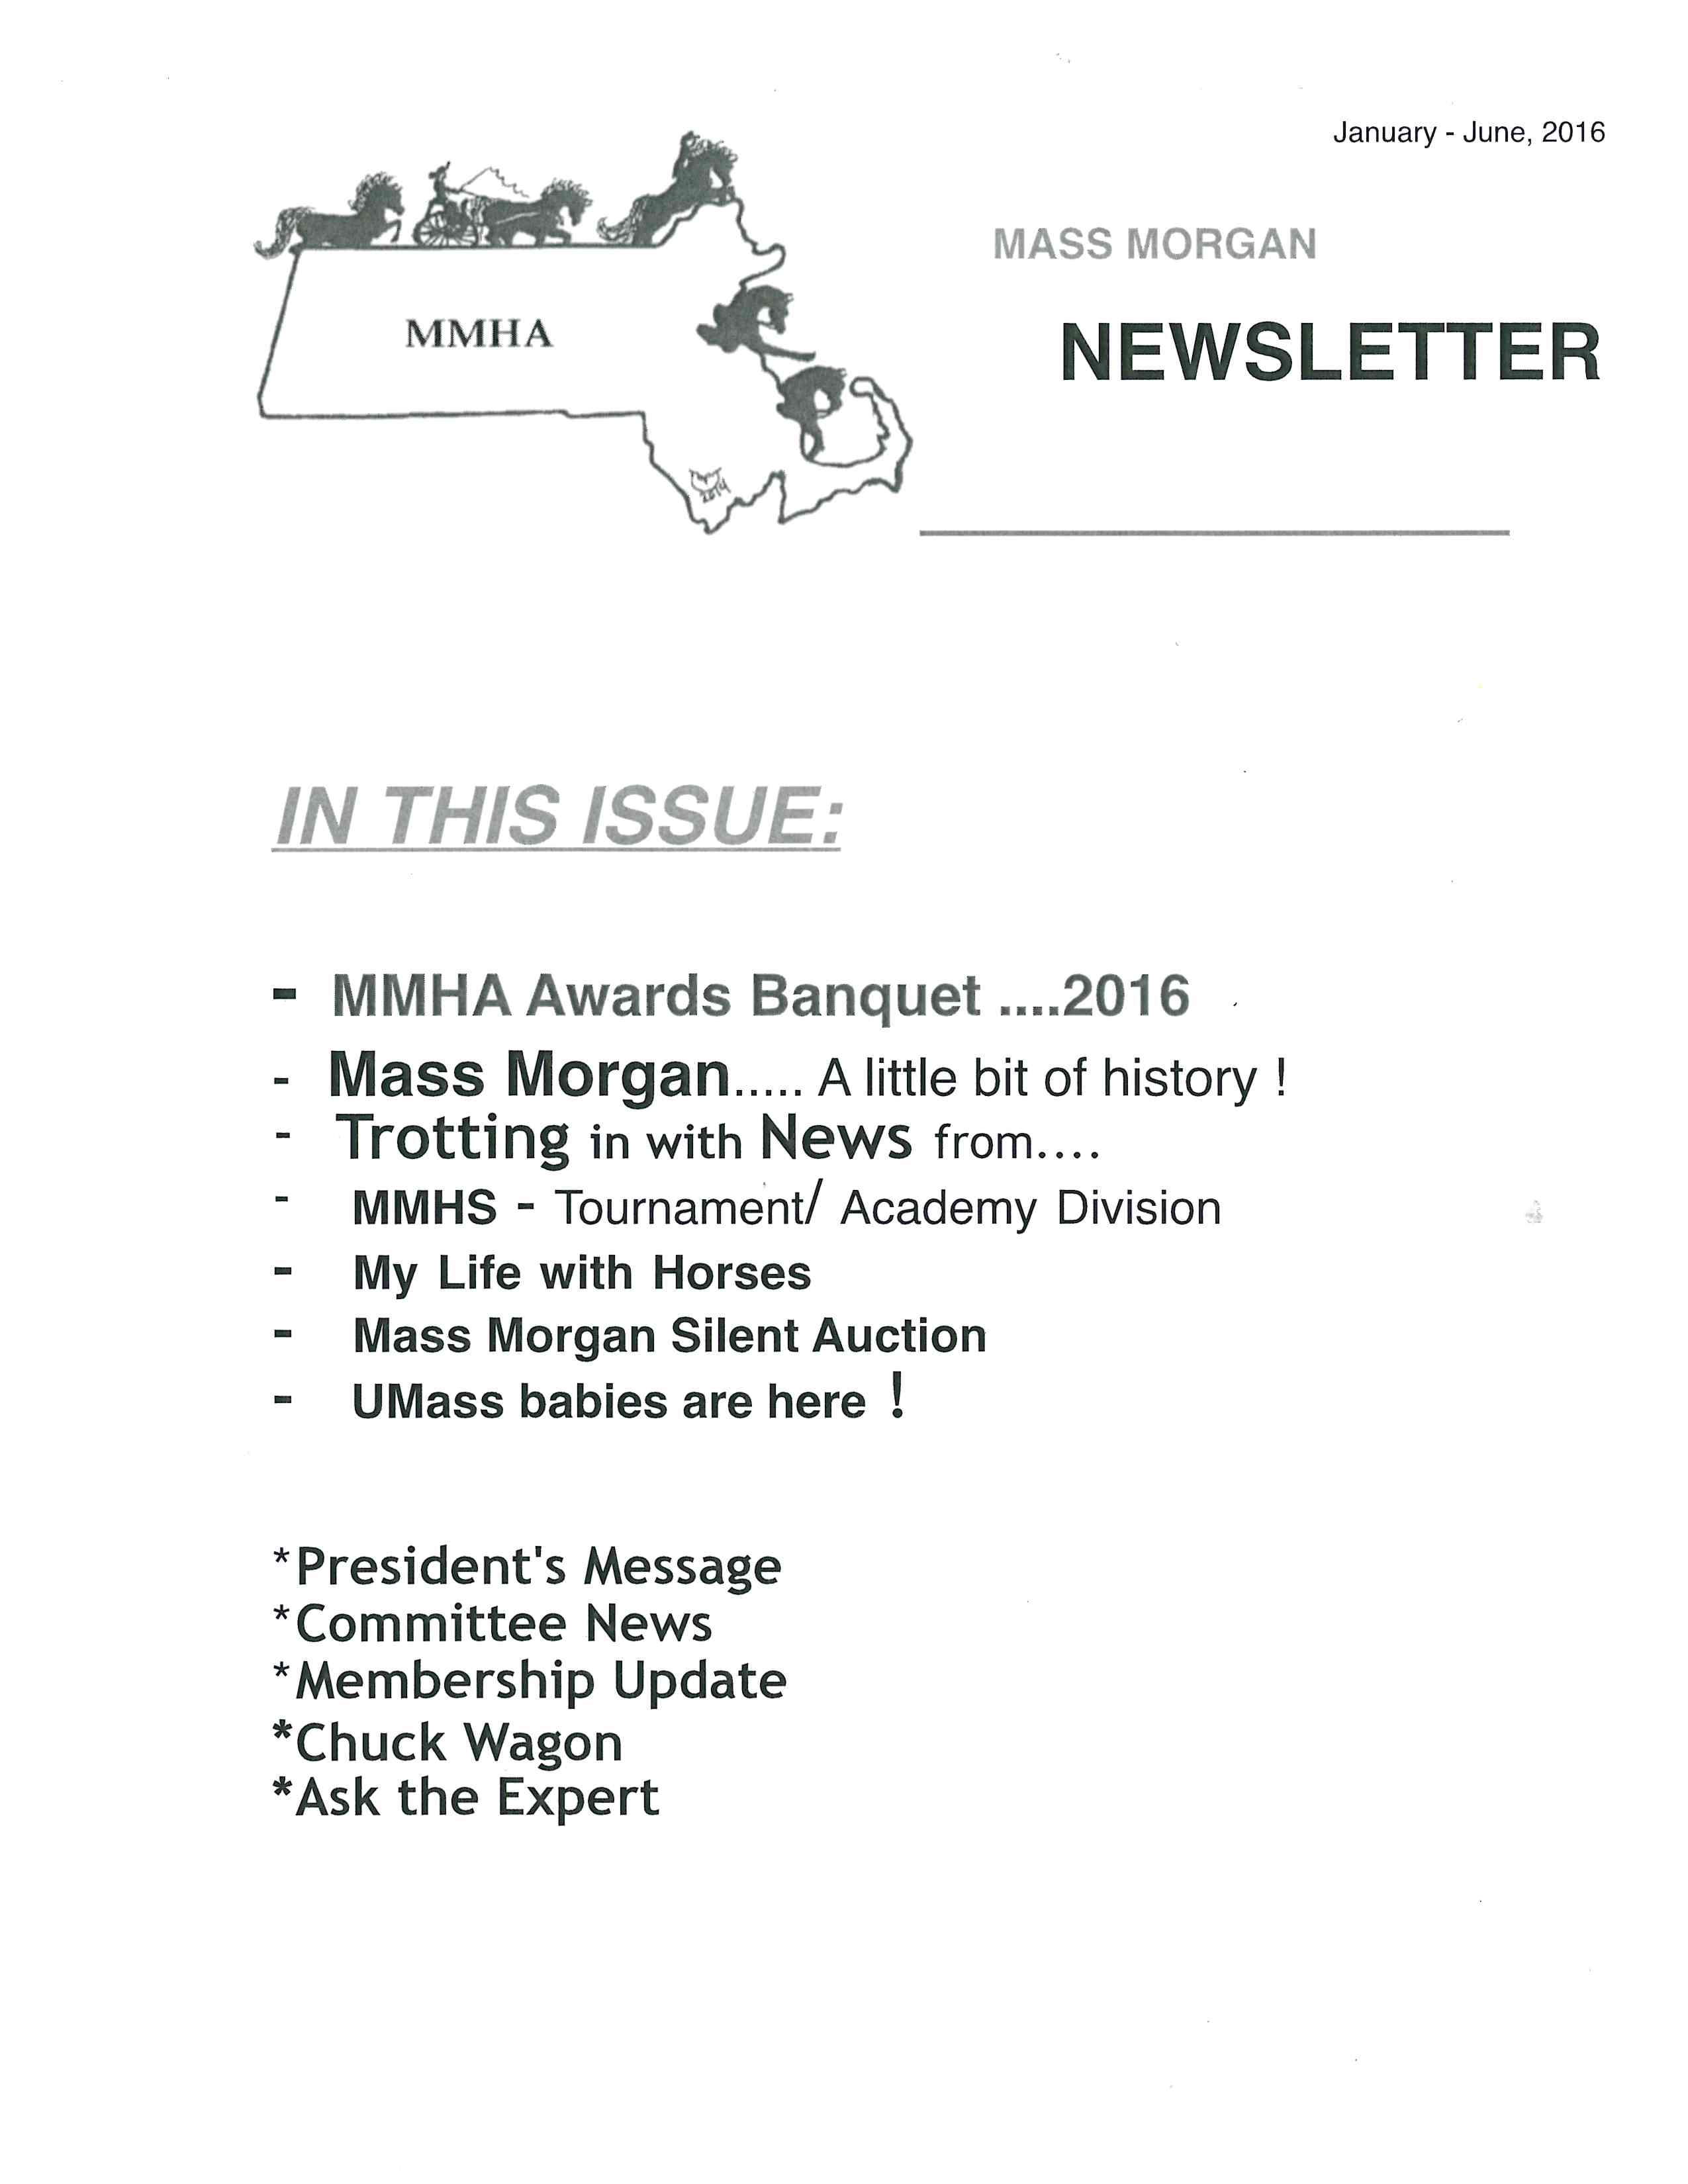 MMHA Newsletter Jan - Jun 2016